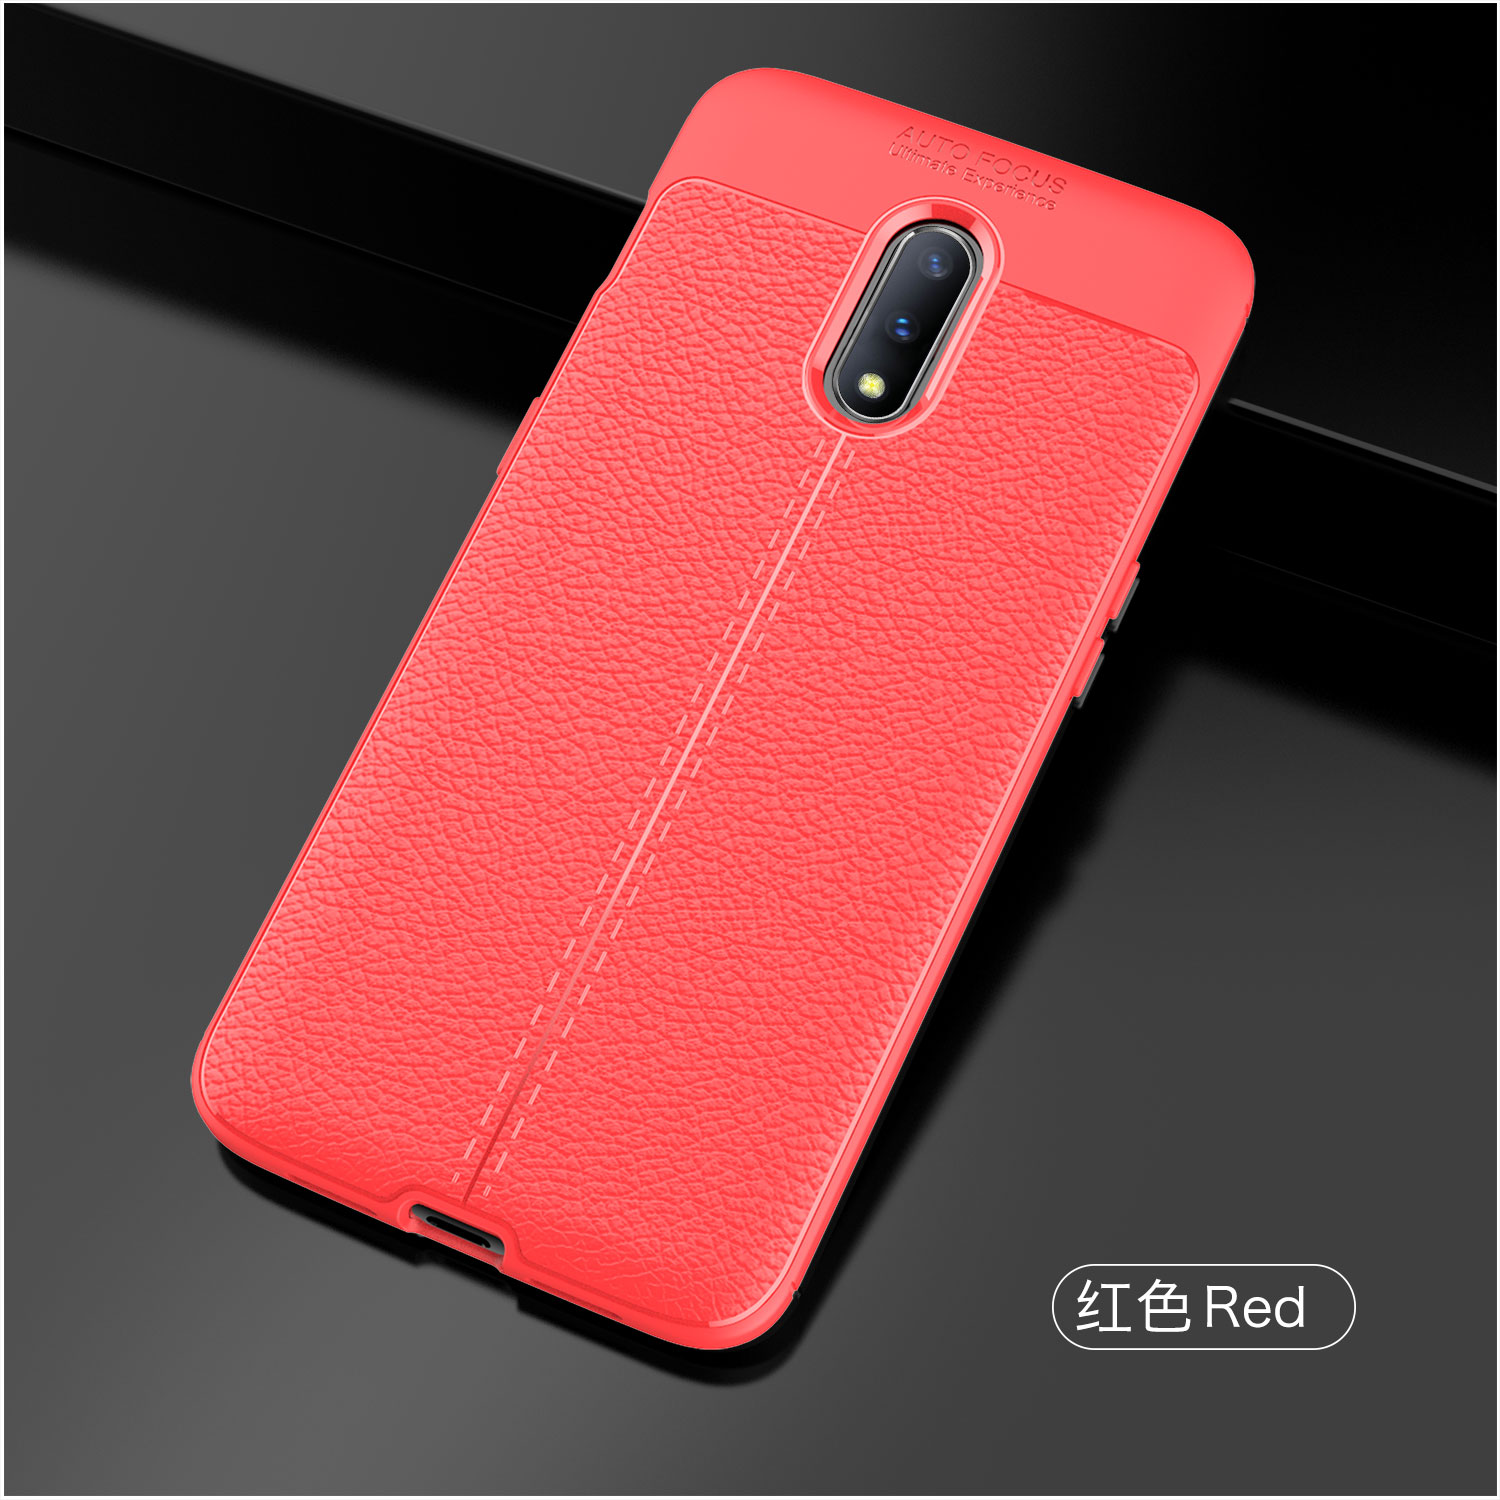 Bakeey Anti-Fingerprint Soft Litchi Texture Silicone Protective Case For OnePlus 7